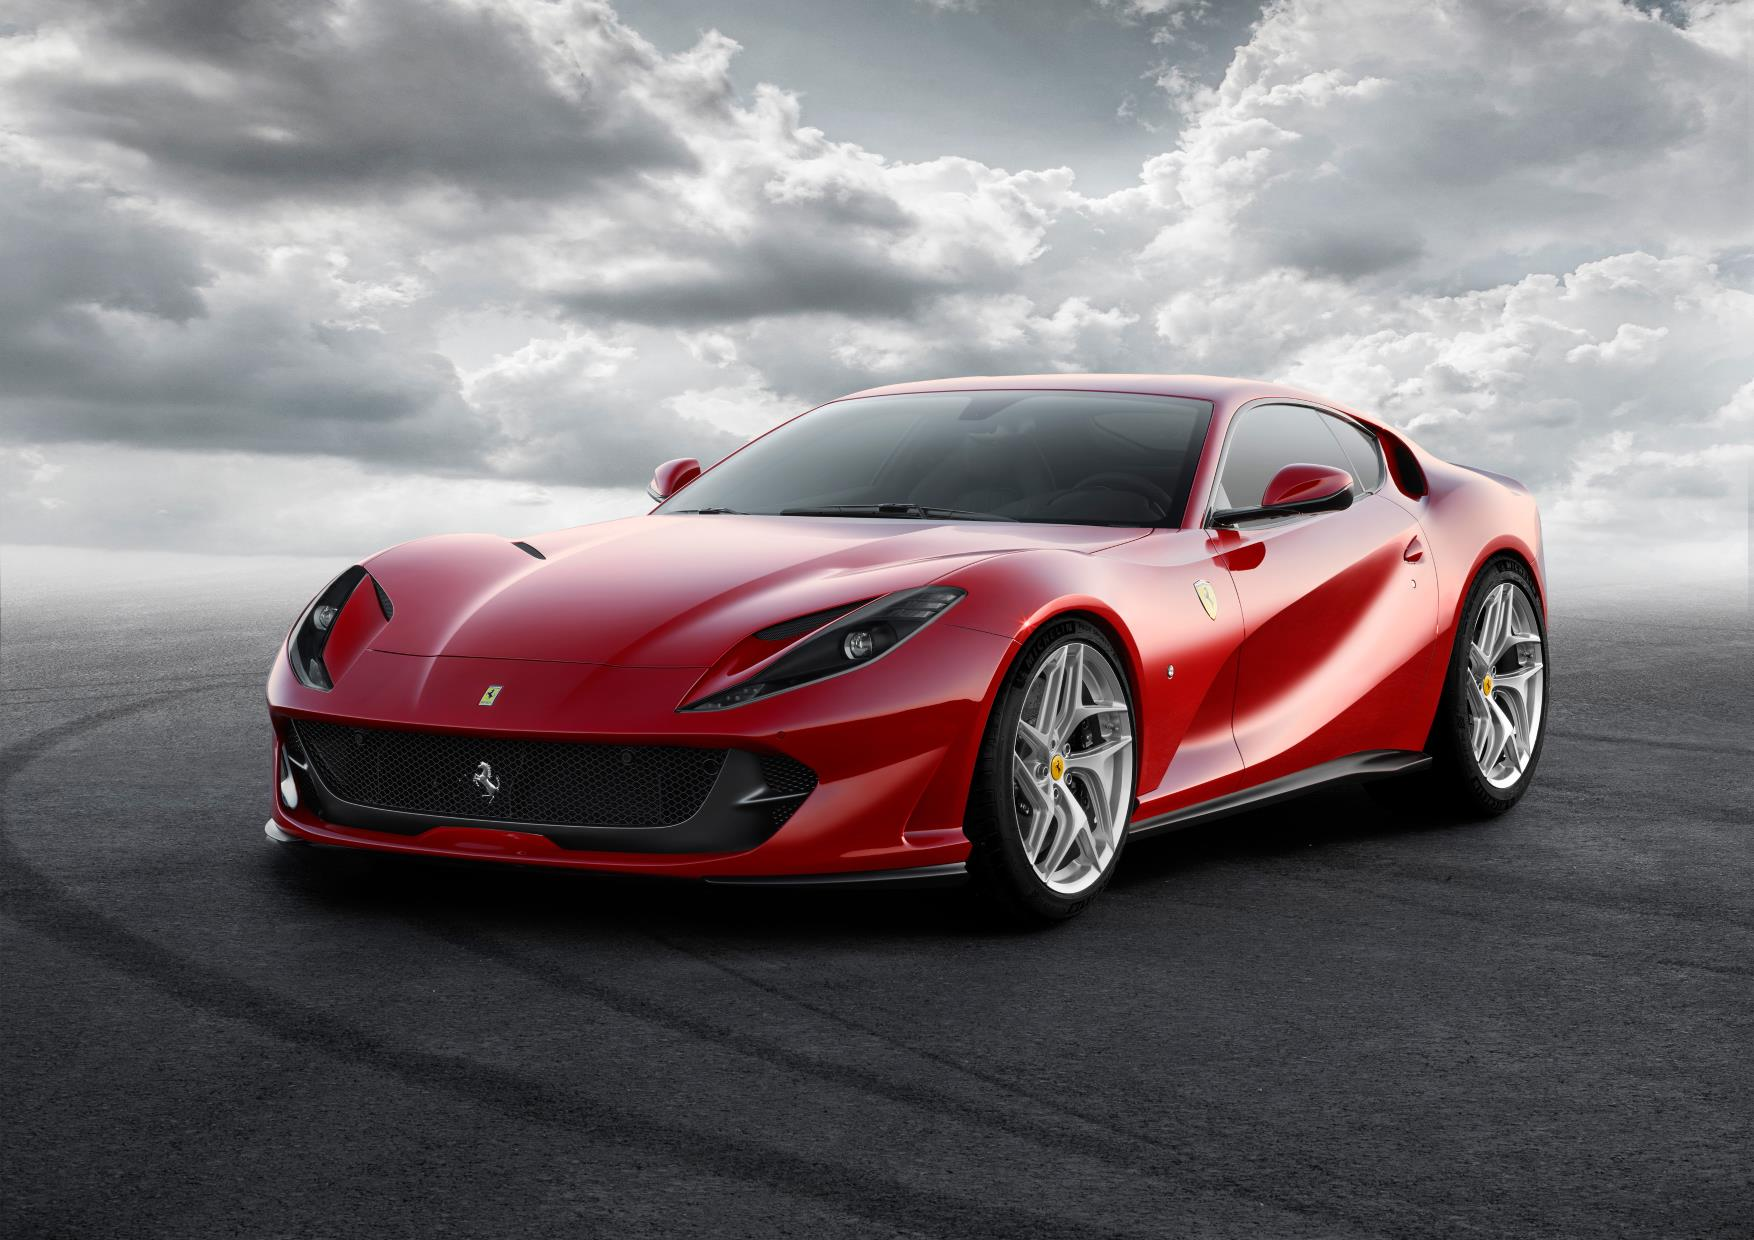 ferrari 812 superfast mieten m nchen auto mieten m nchen audi r8 mieten in m nchen. Black Bedroom Furniture Sets. Home Design Ideas